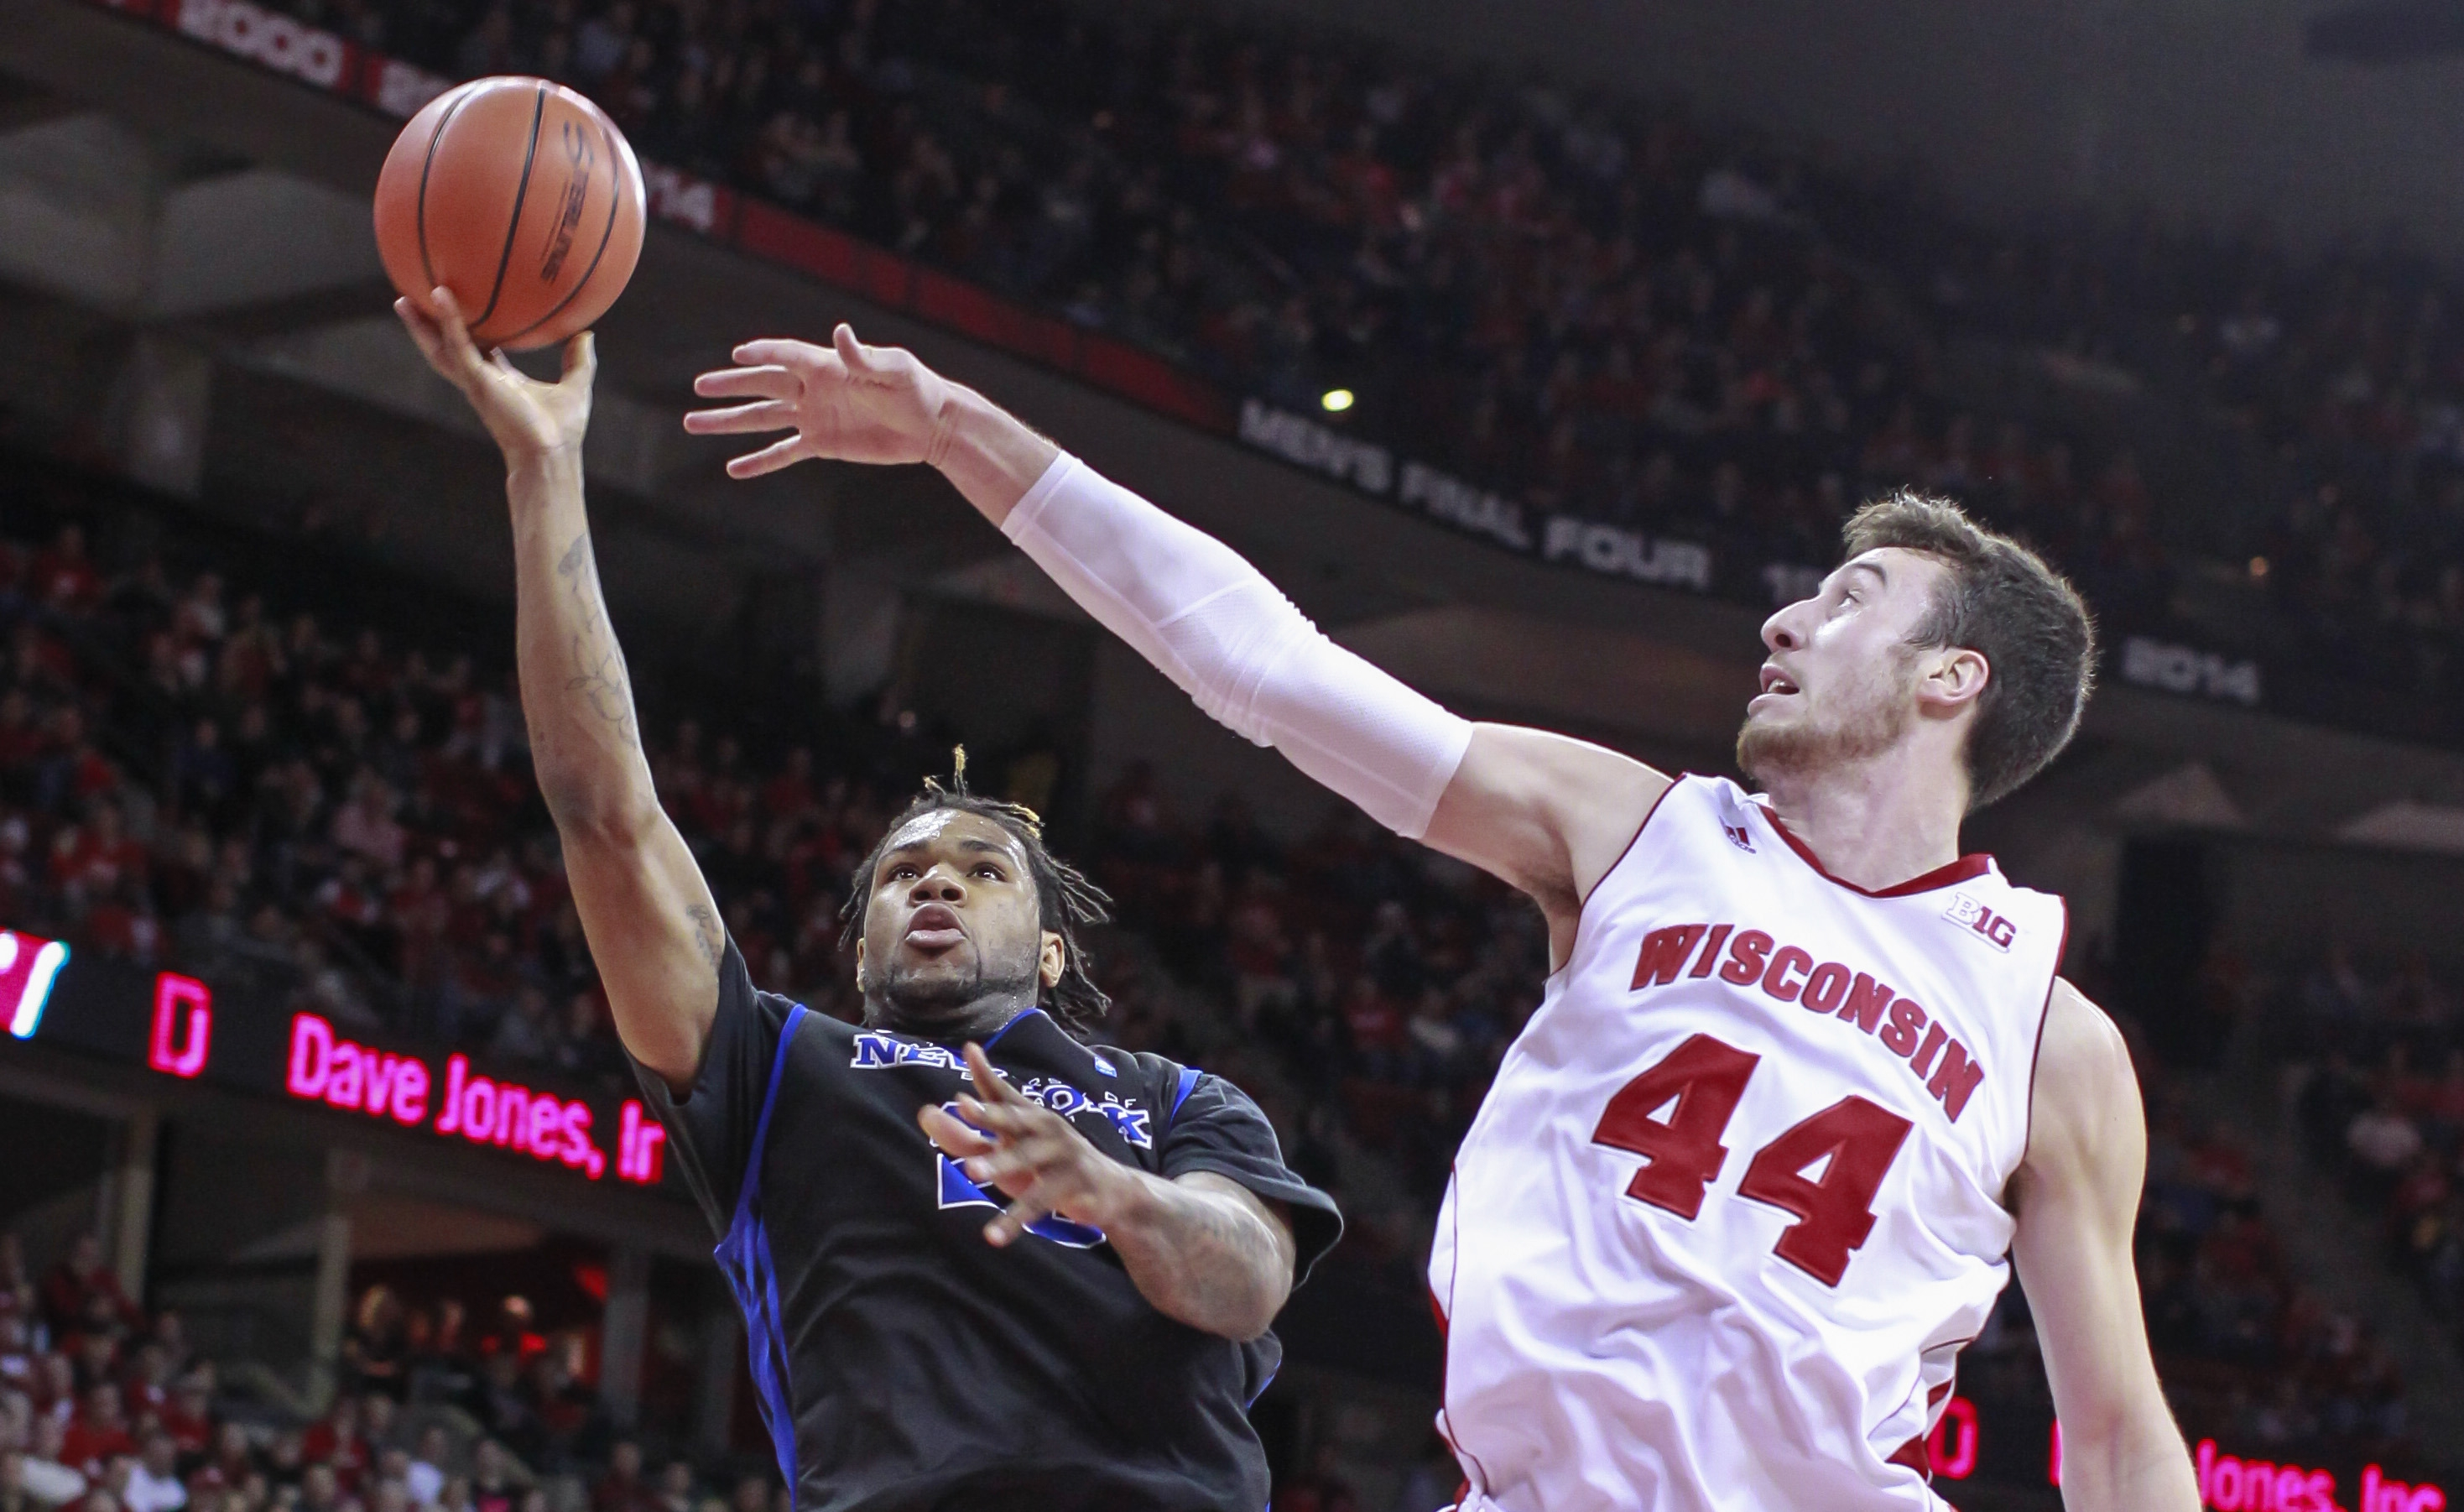 UB's Justin Moss gets off a shot against Wisconsin 7-footer Frank Kaminsky during the first half. Moss led the Bulls with 14 points and 12 rebounds in a 68-56 loss.